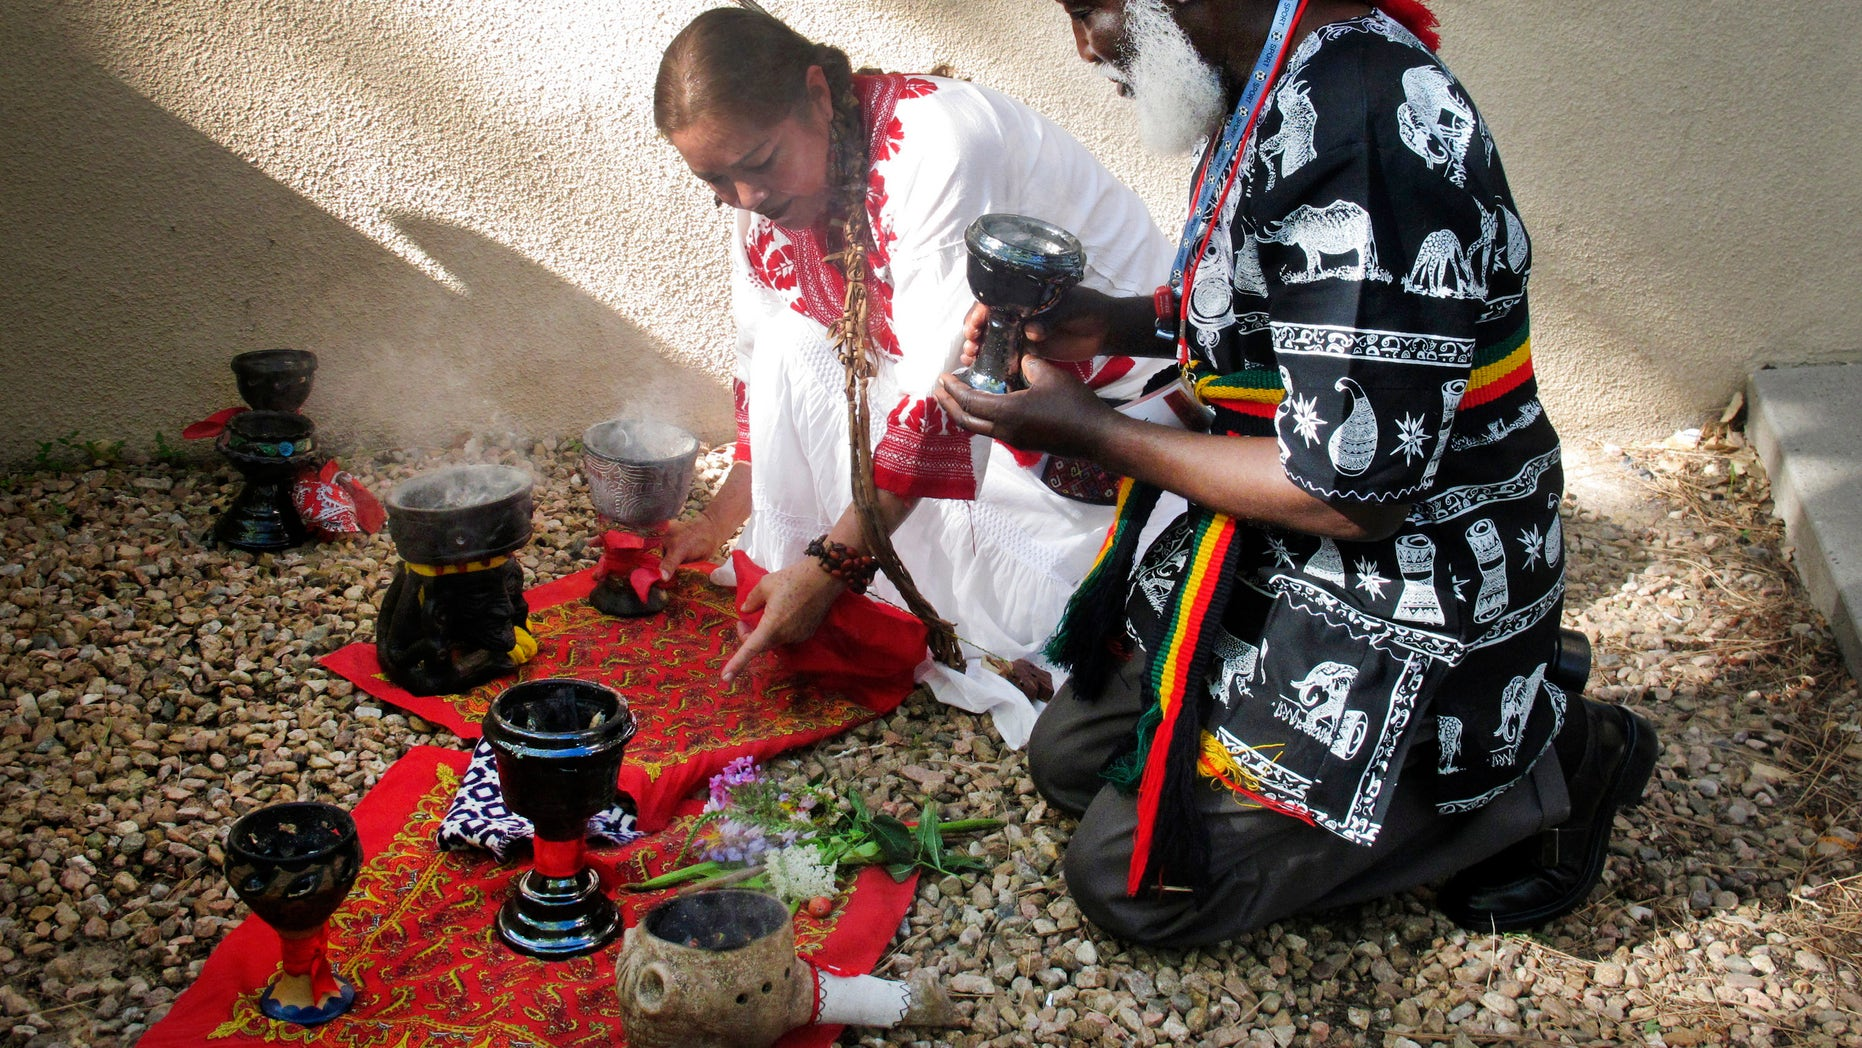 Curanderos, or traditional healers, conducting a ceremony on the campus of the University of New Mexico in Albuquerque.